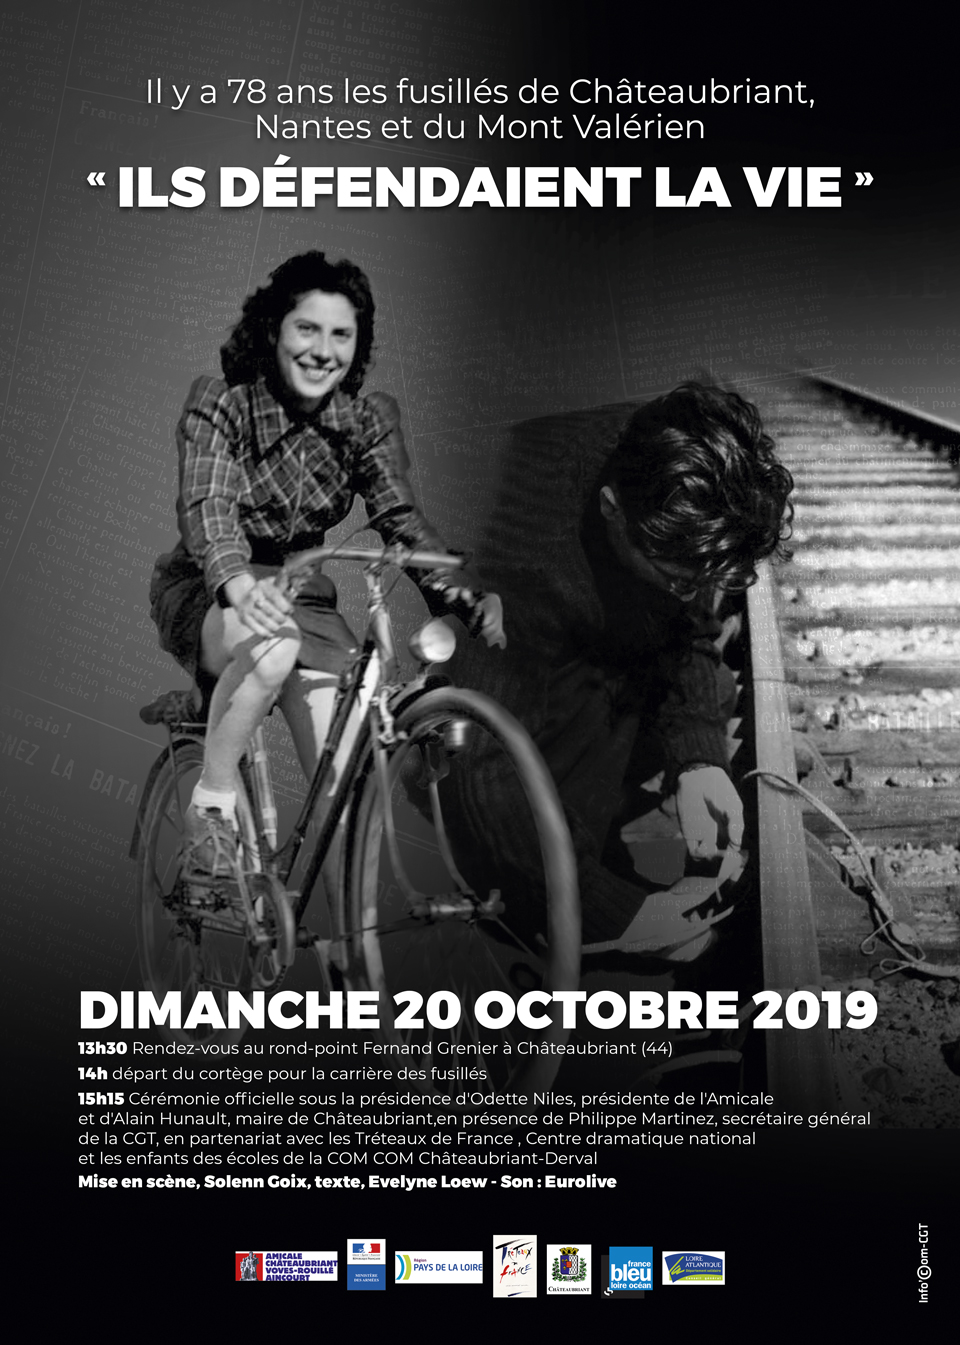 2019_10_20_Amicale_Chateaubriant_Affiche.jpg